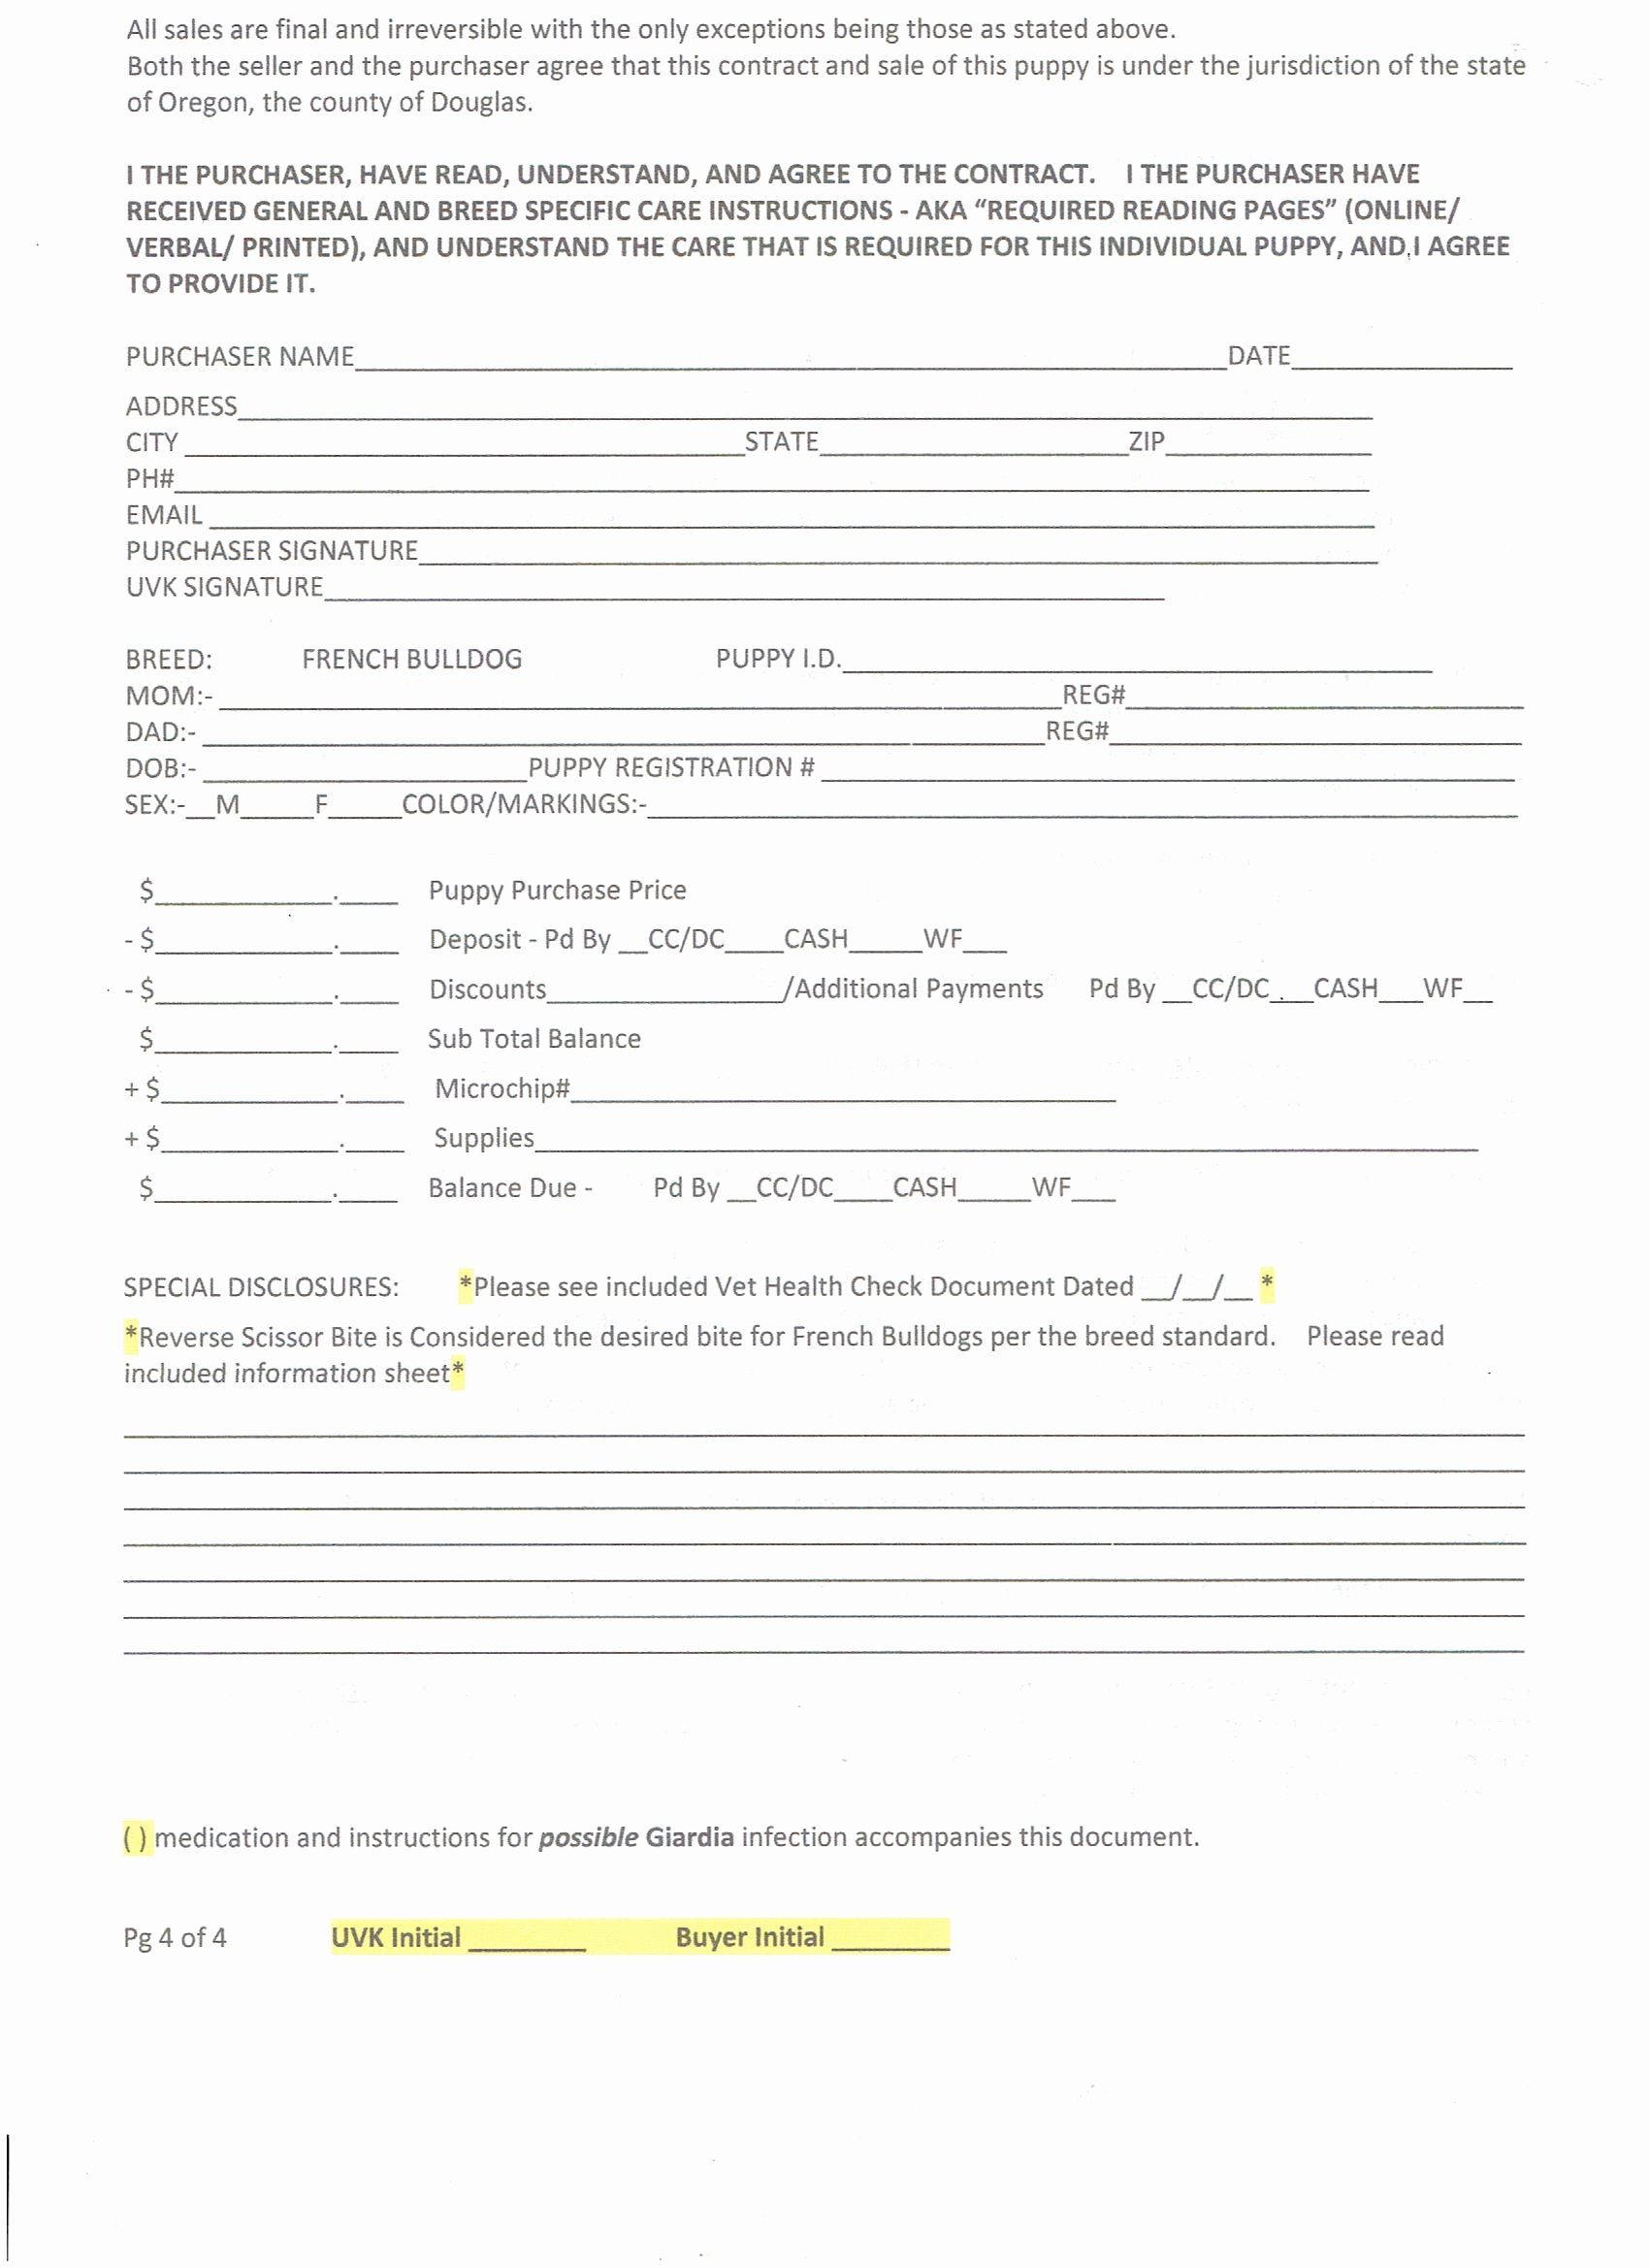 Puppy Sales Contract Template Beautiful Puppy Sales Contract Design Templates